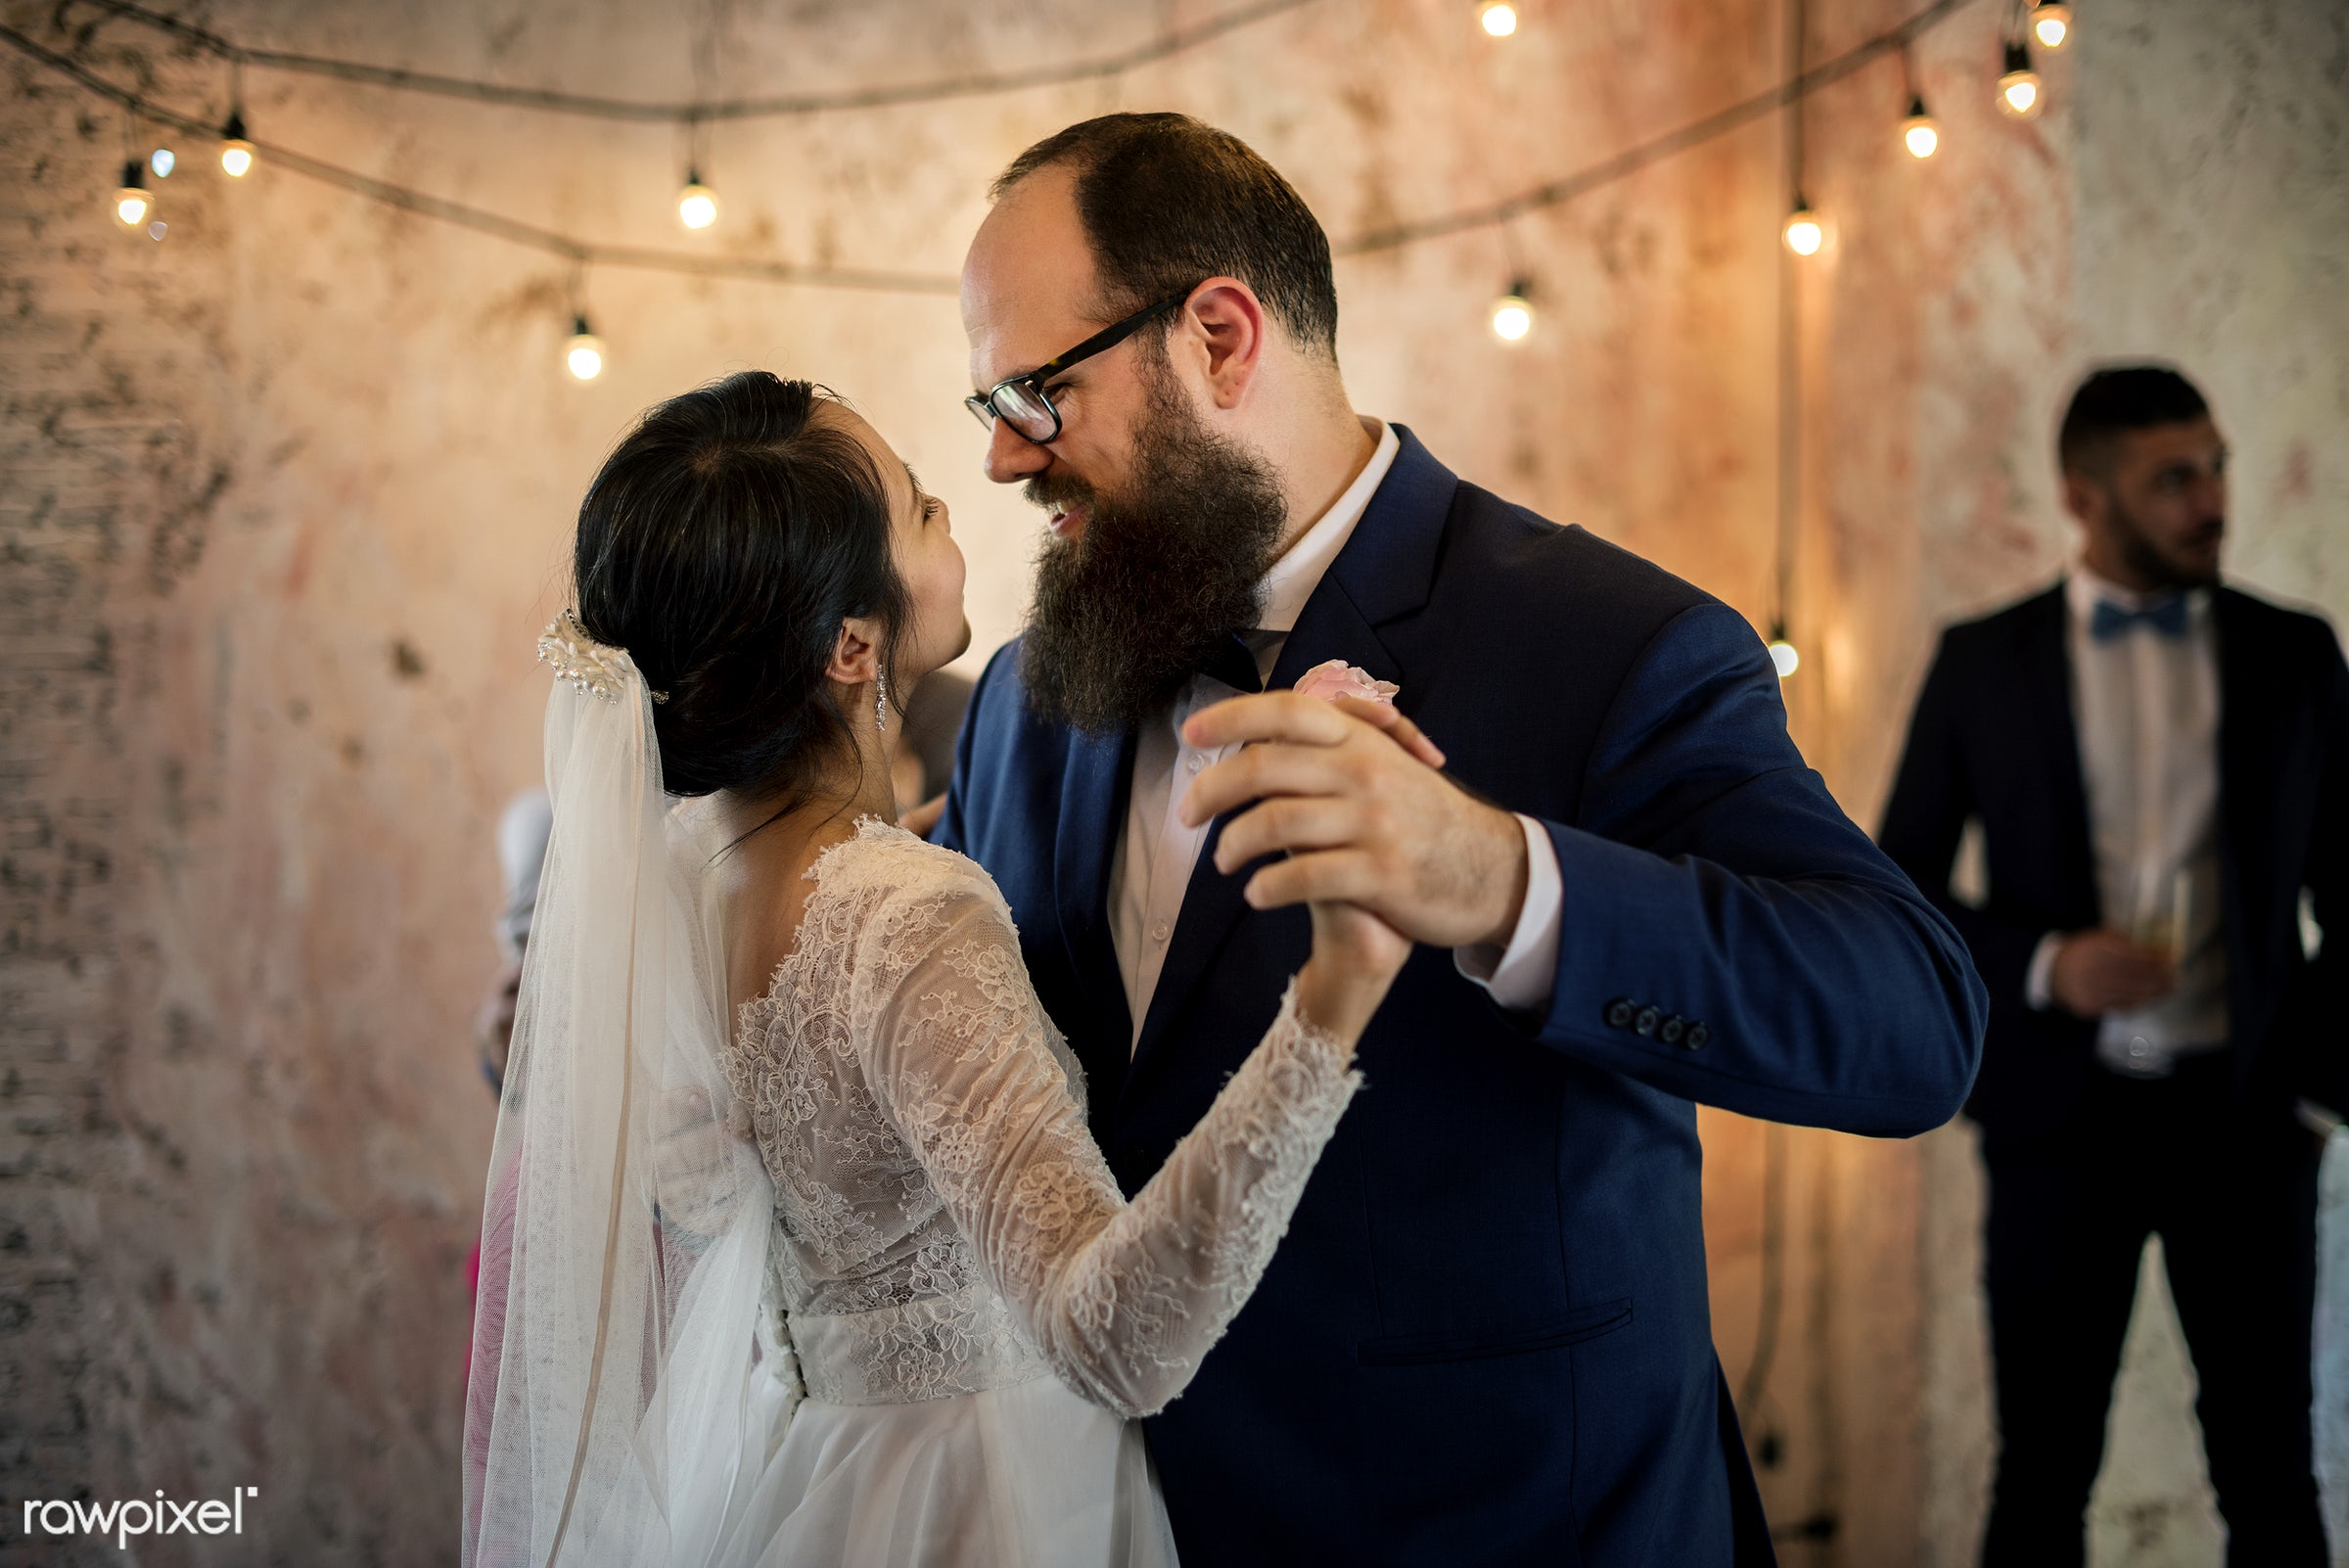 Bridge and groom wedding day - asian, banquet, beard, bride, caucasian, celebration, cheerful, dance, groom, hands,...